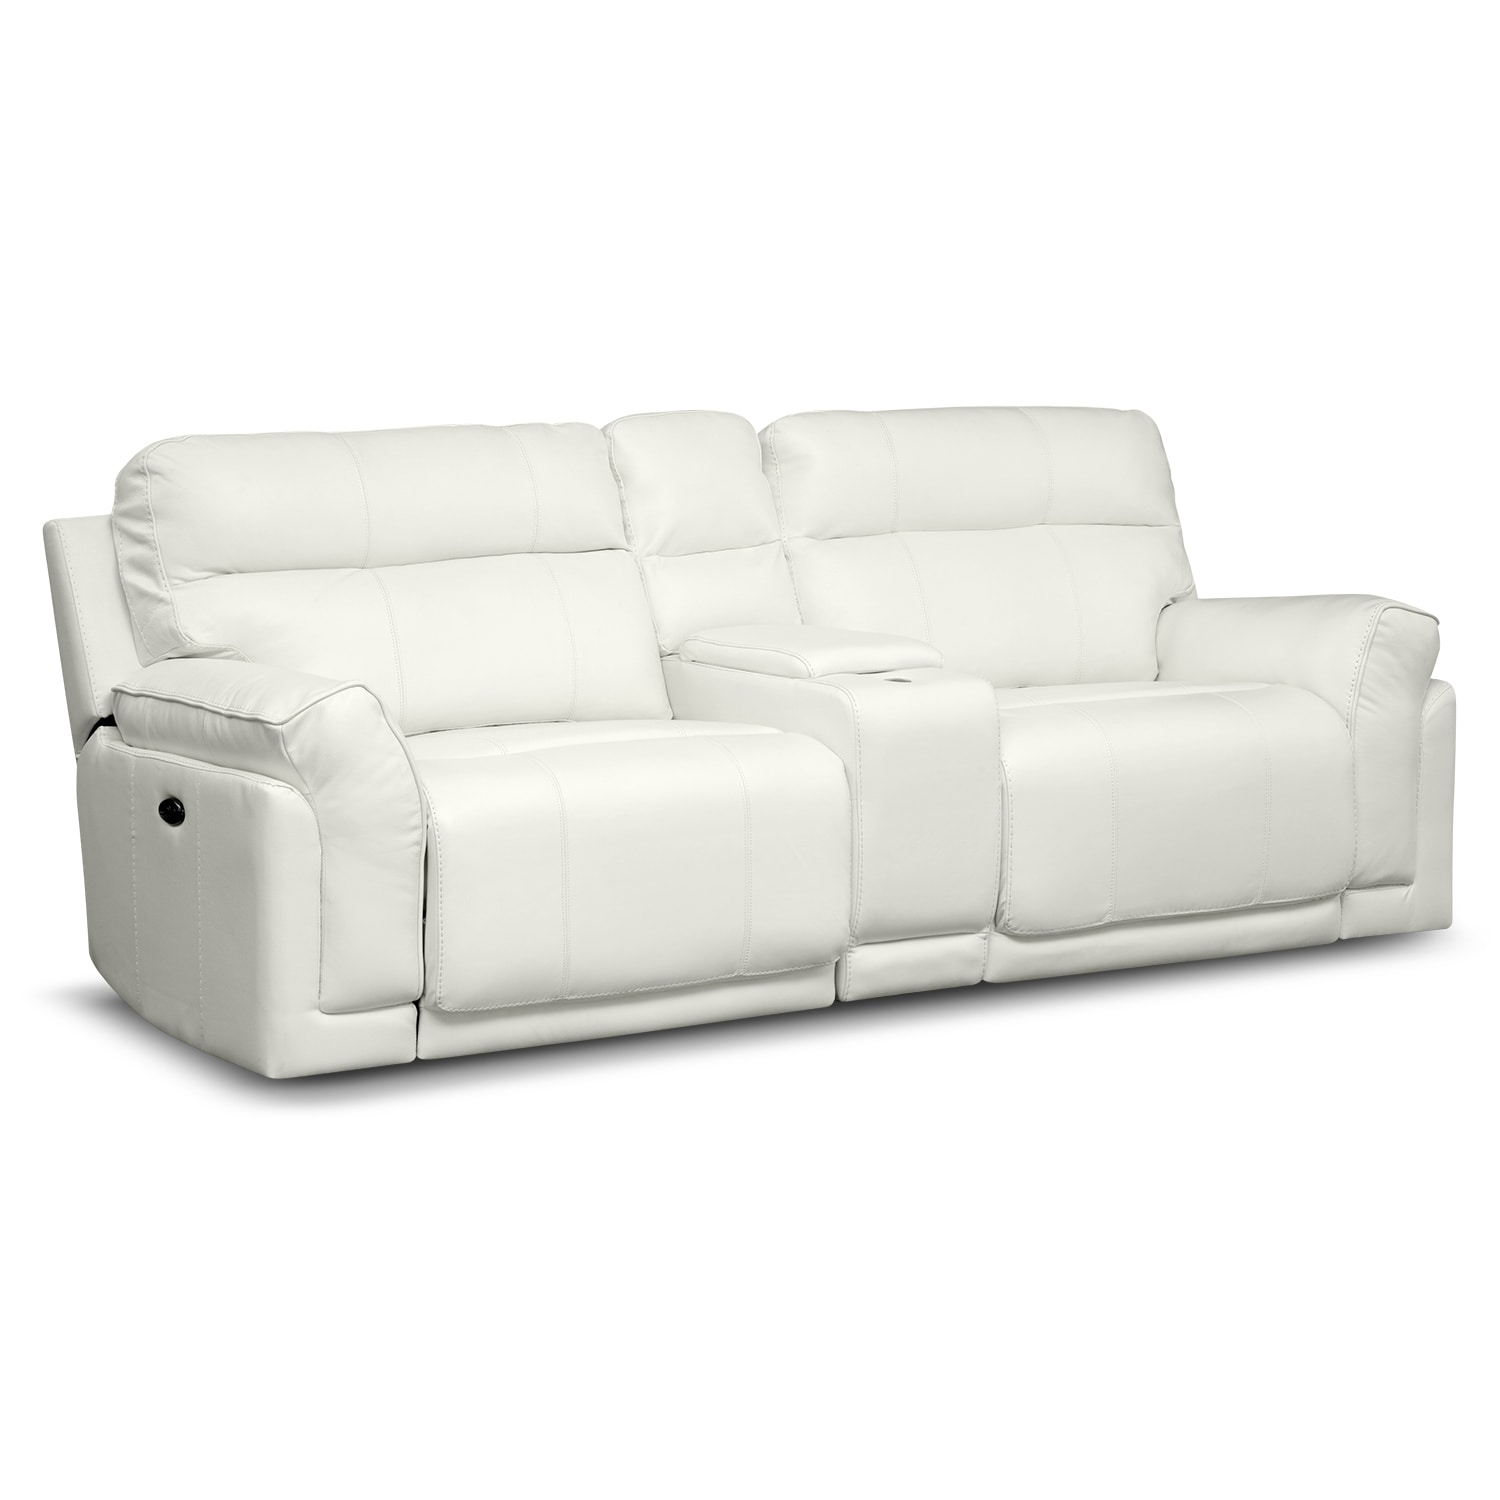 Antonio white leather power reclining sofa with console Power loveseat recliner